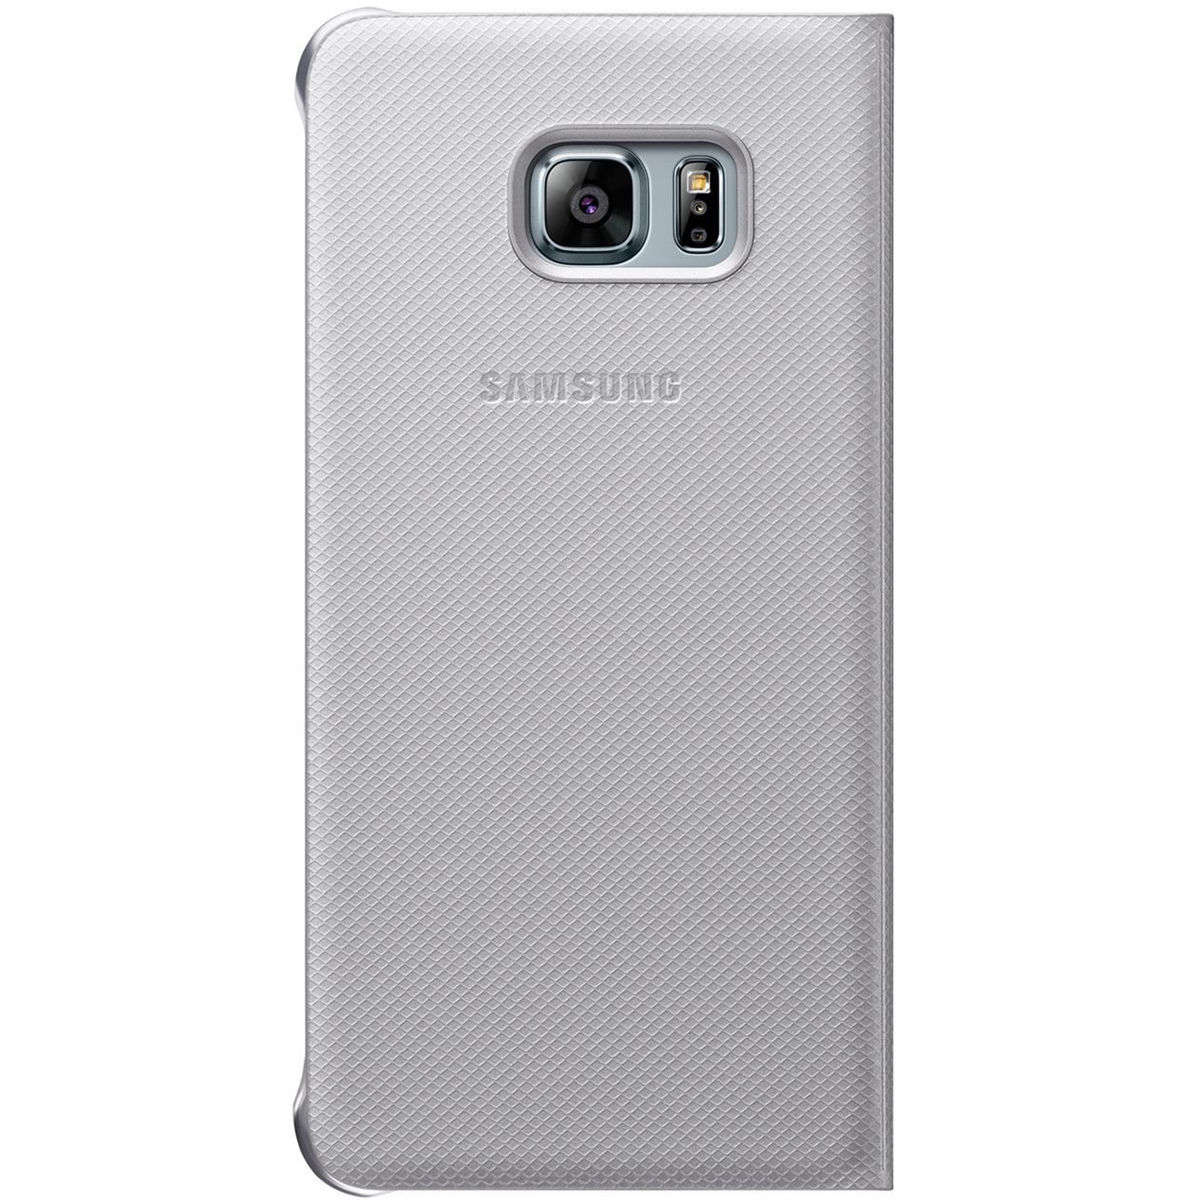 Samsung S-View Cover EF-CG928 f�r Galaxy S6 Edge+ silber